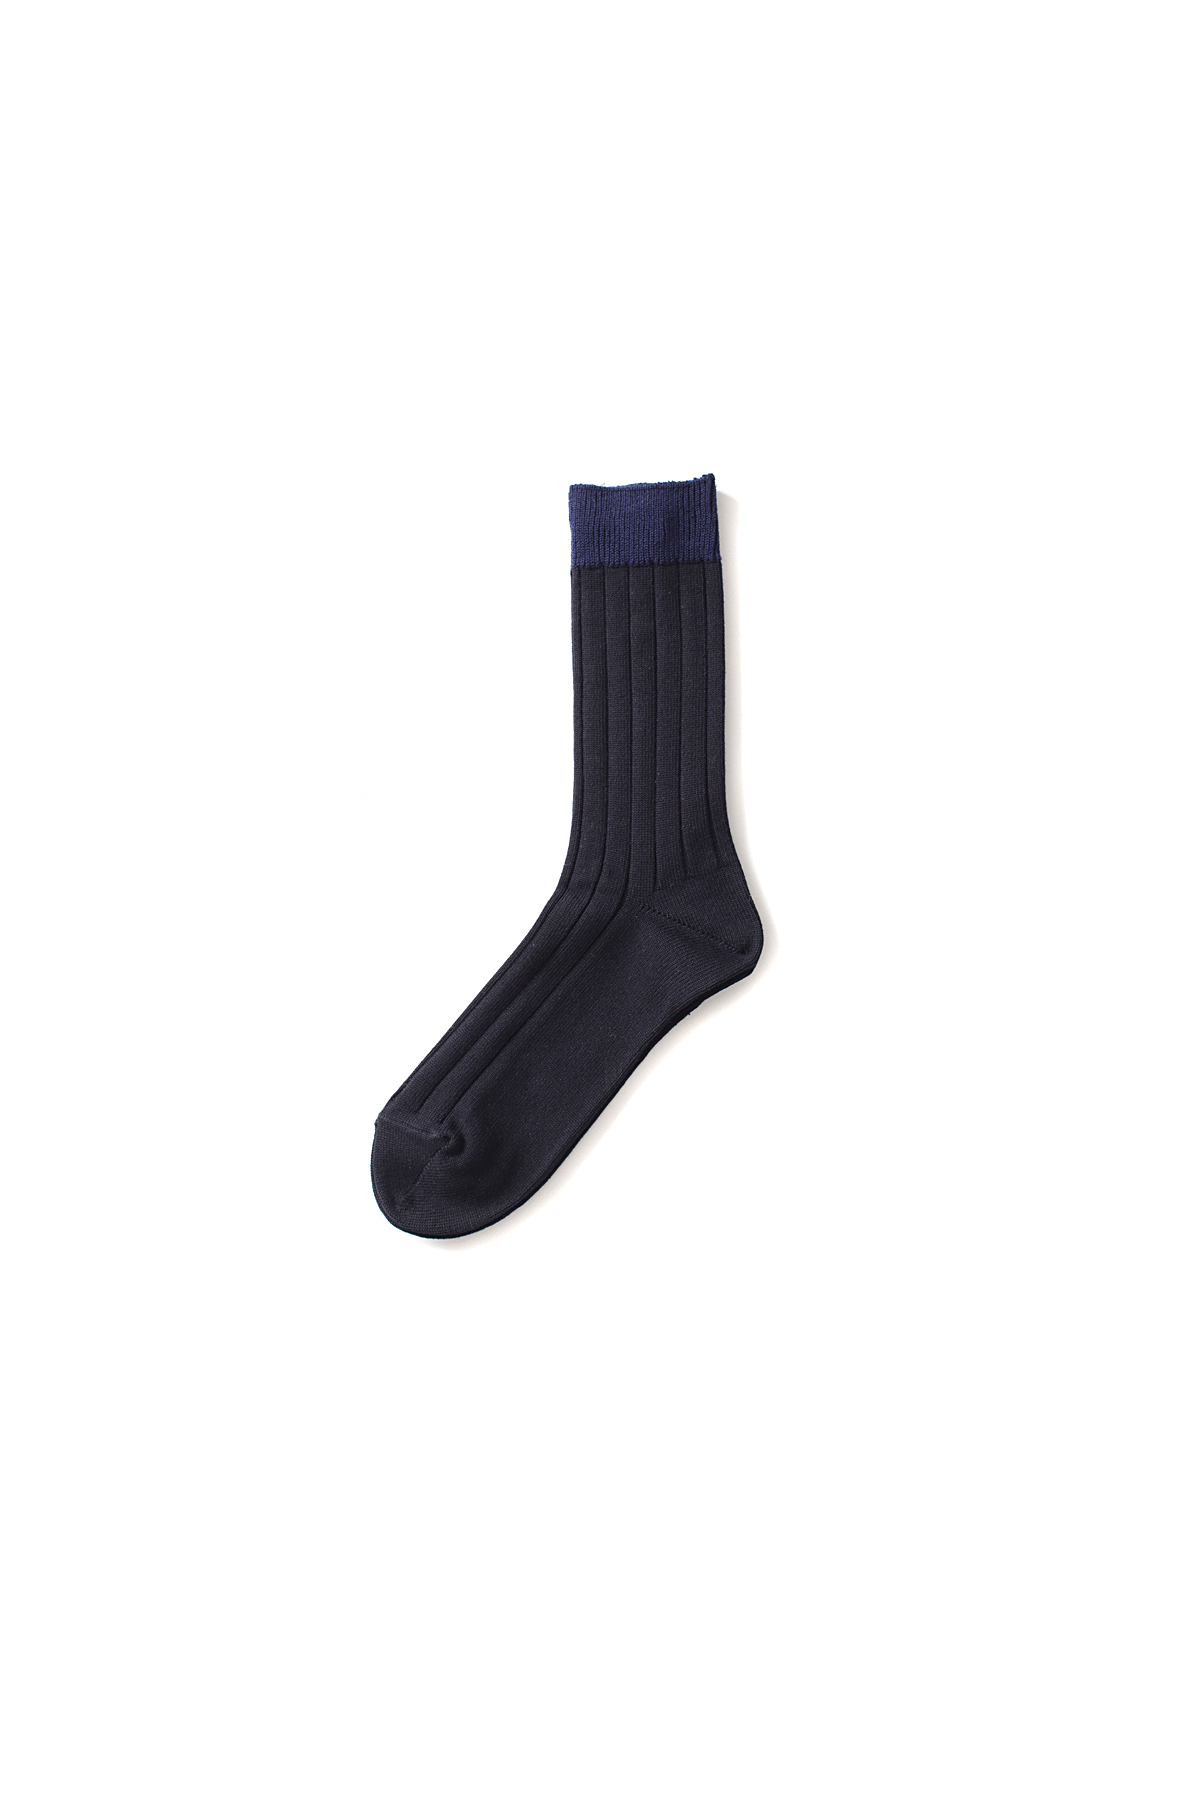 Curly : Bright Sox (Black)